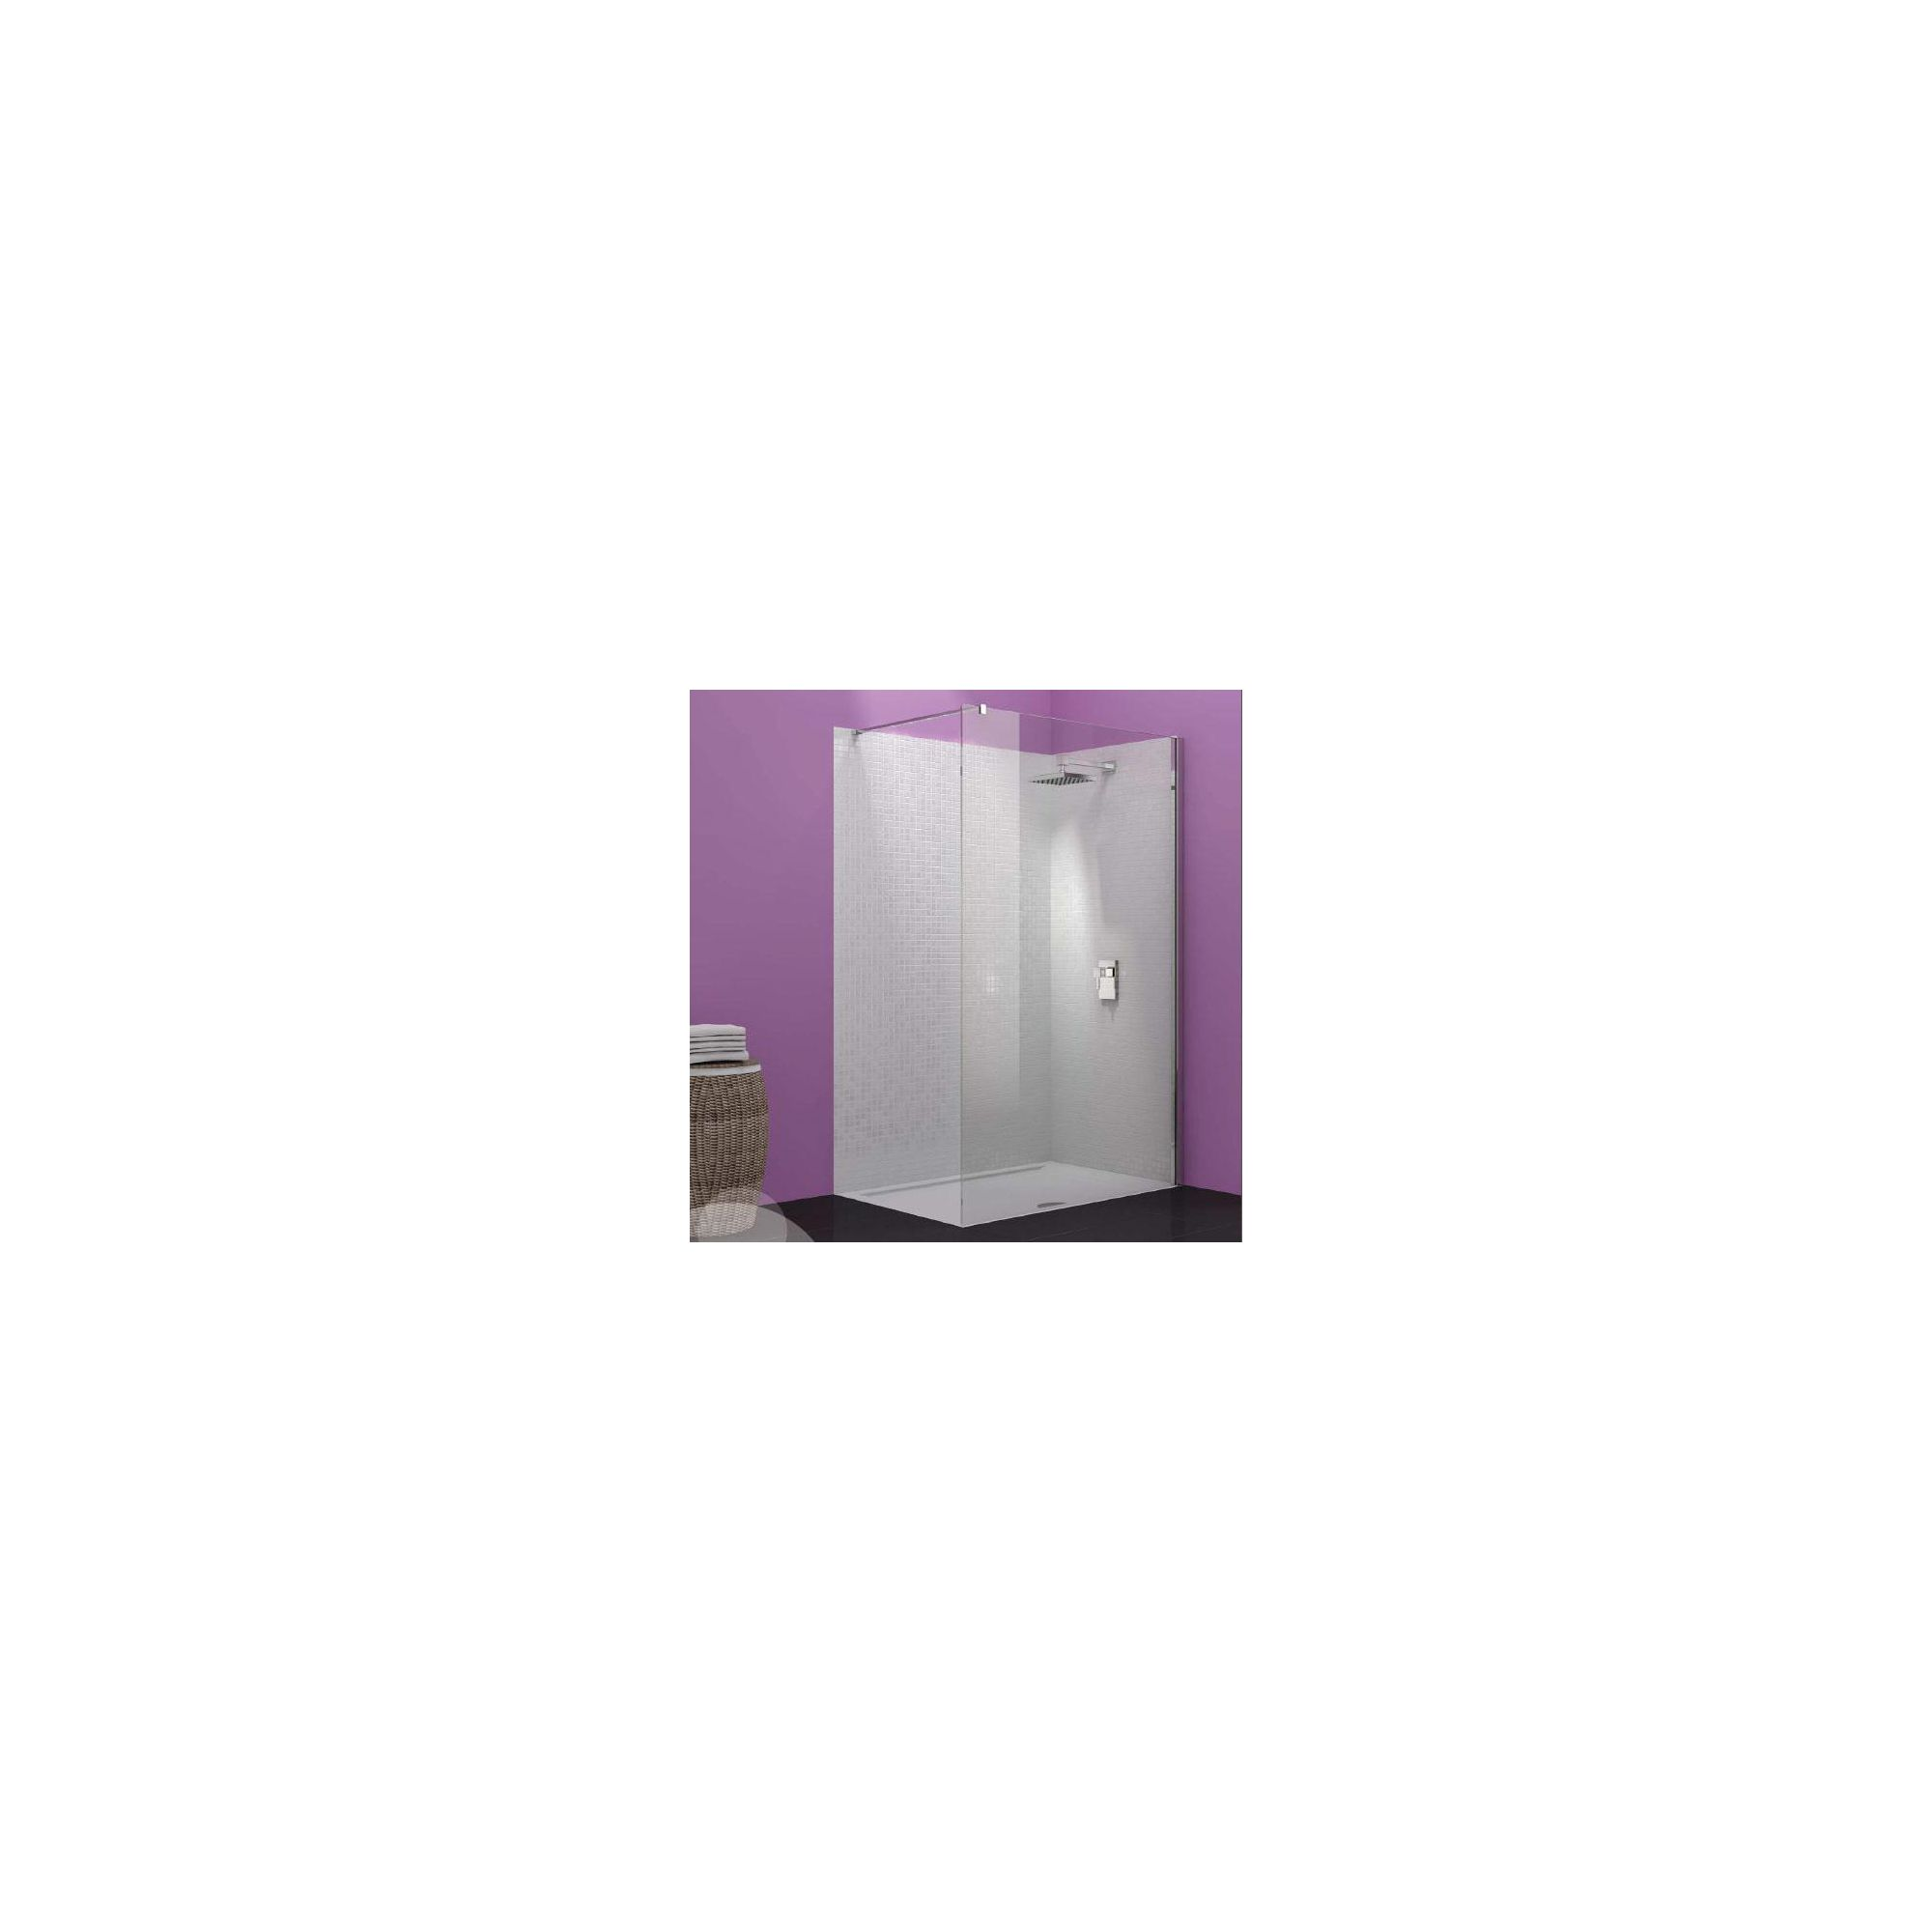 Merlyn Vivid Ten Wet Room Shower Enclosure, 1200mm x 800mm, Low Profile Tray, 10mm Glass at Tesco Direct